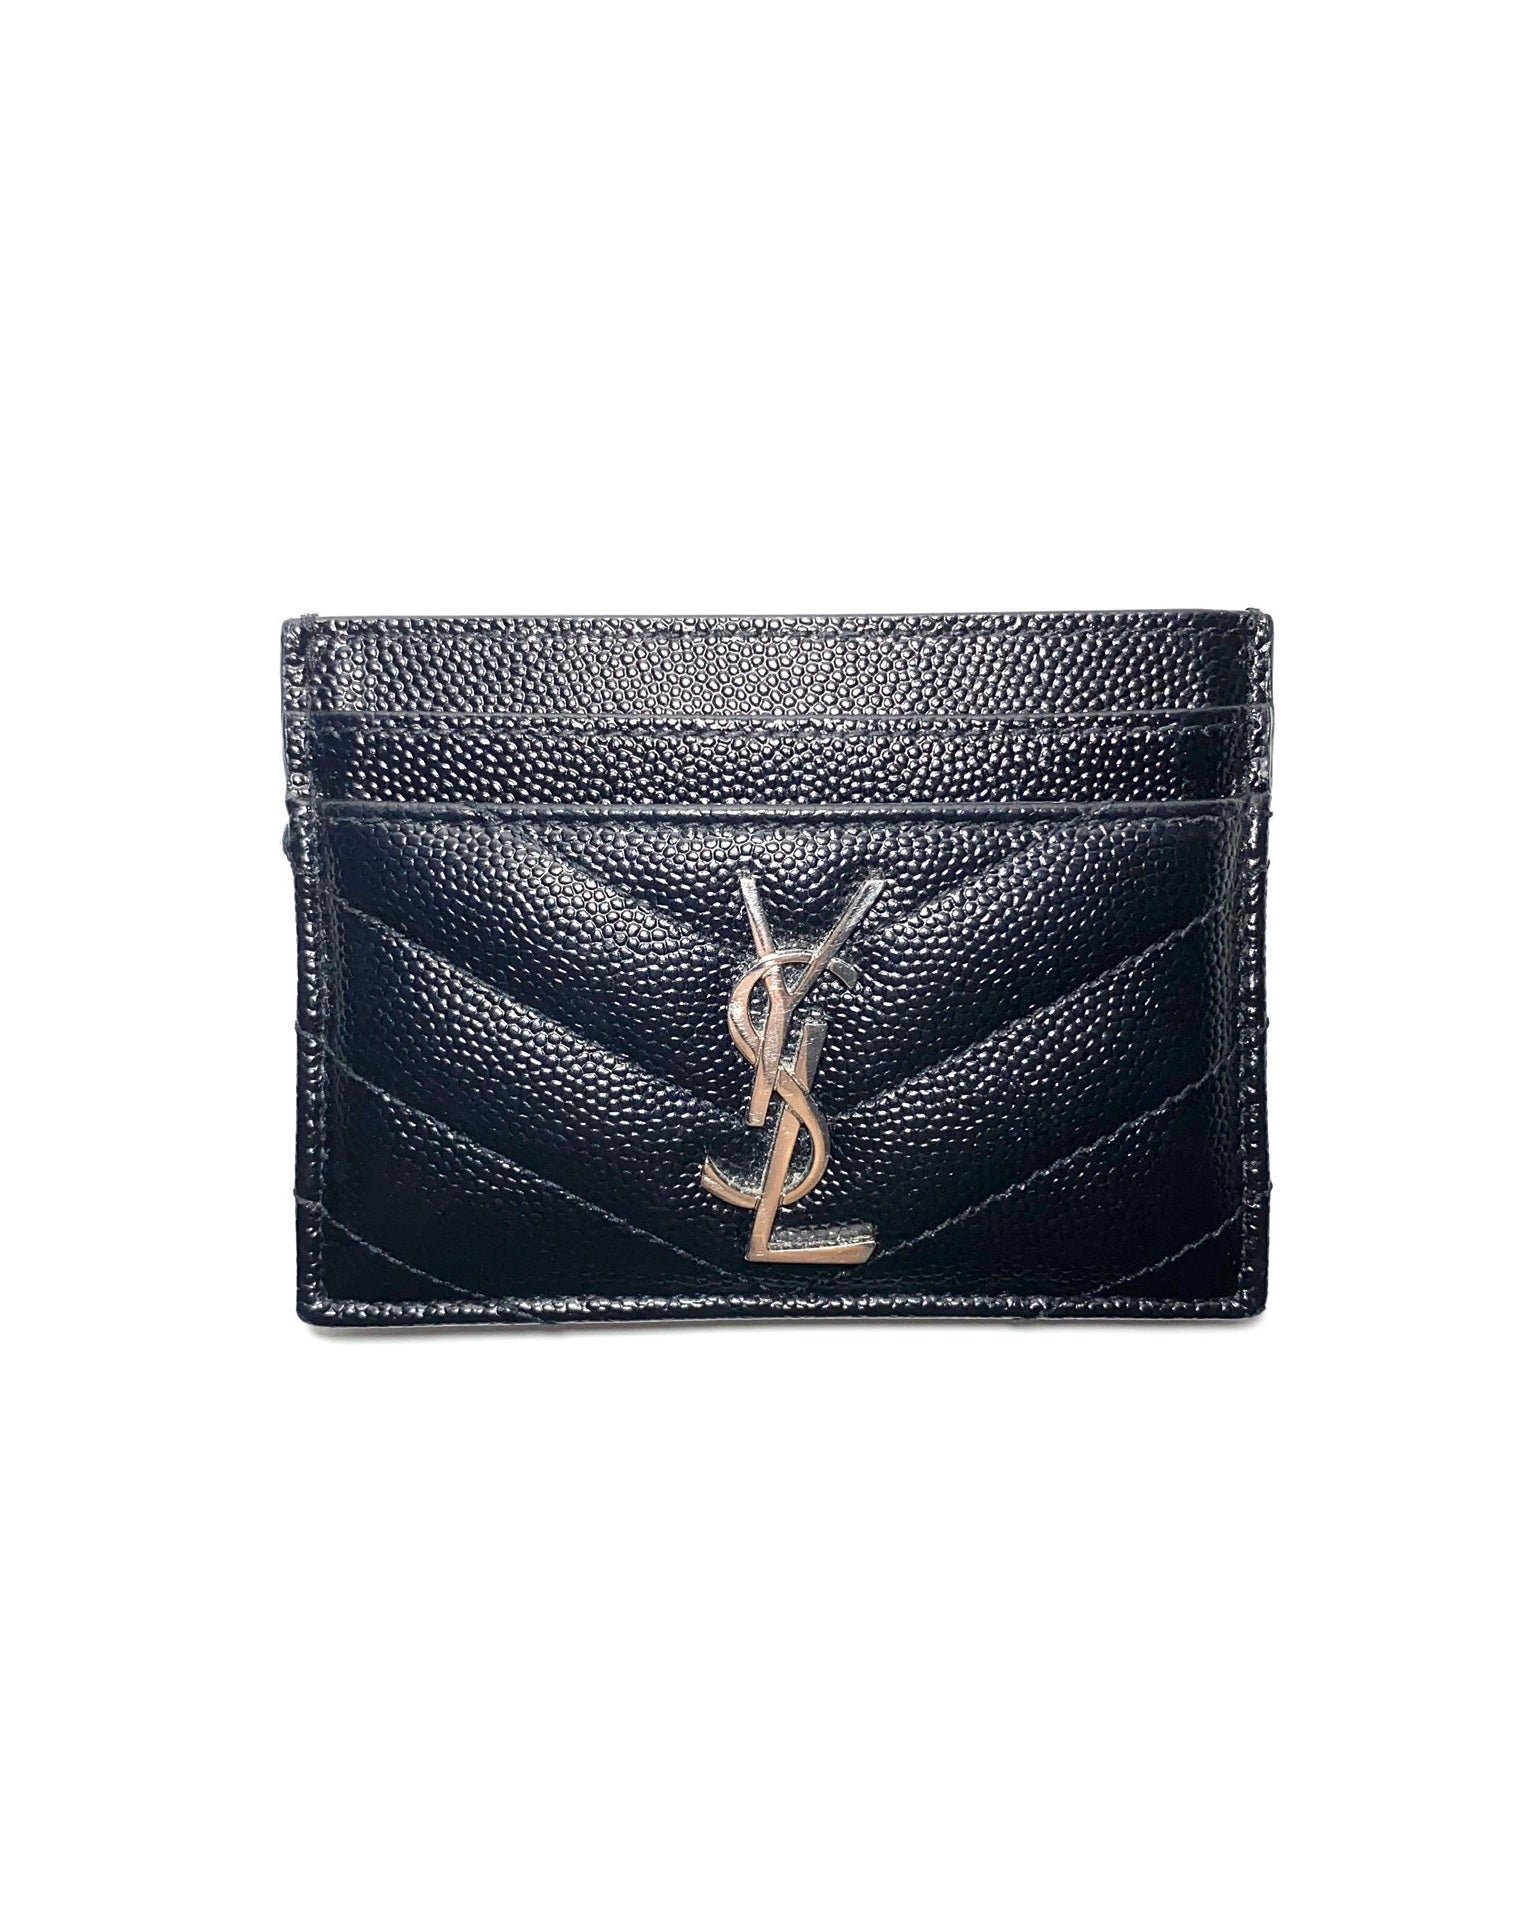 Monogram Matelassé Leather Card Holder